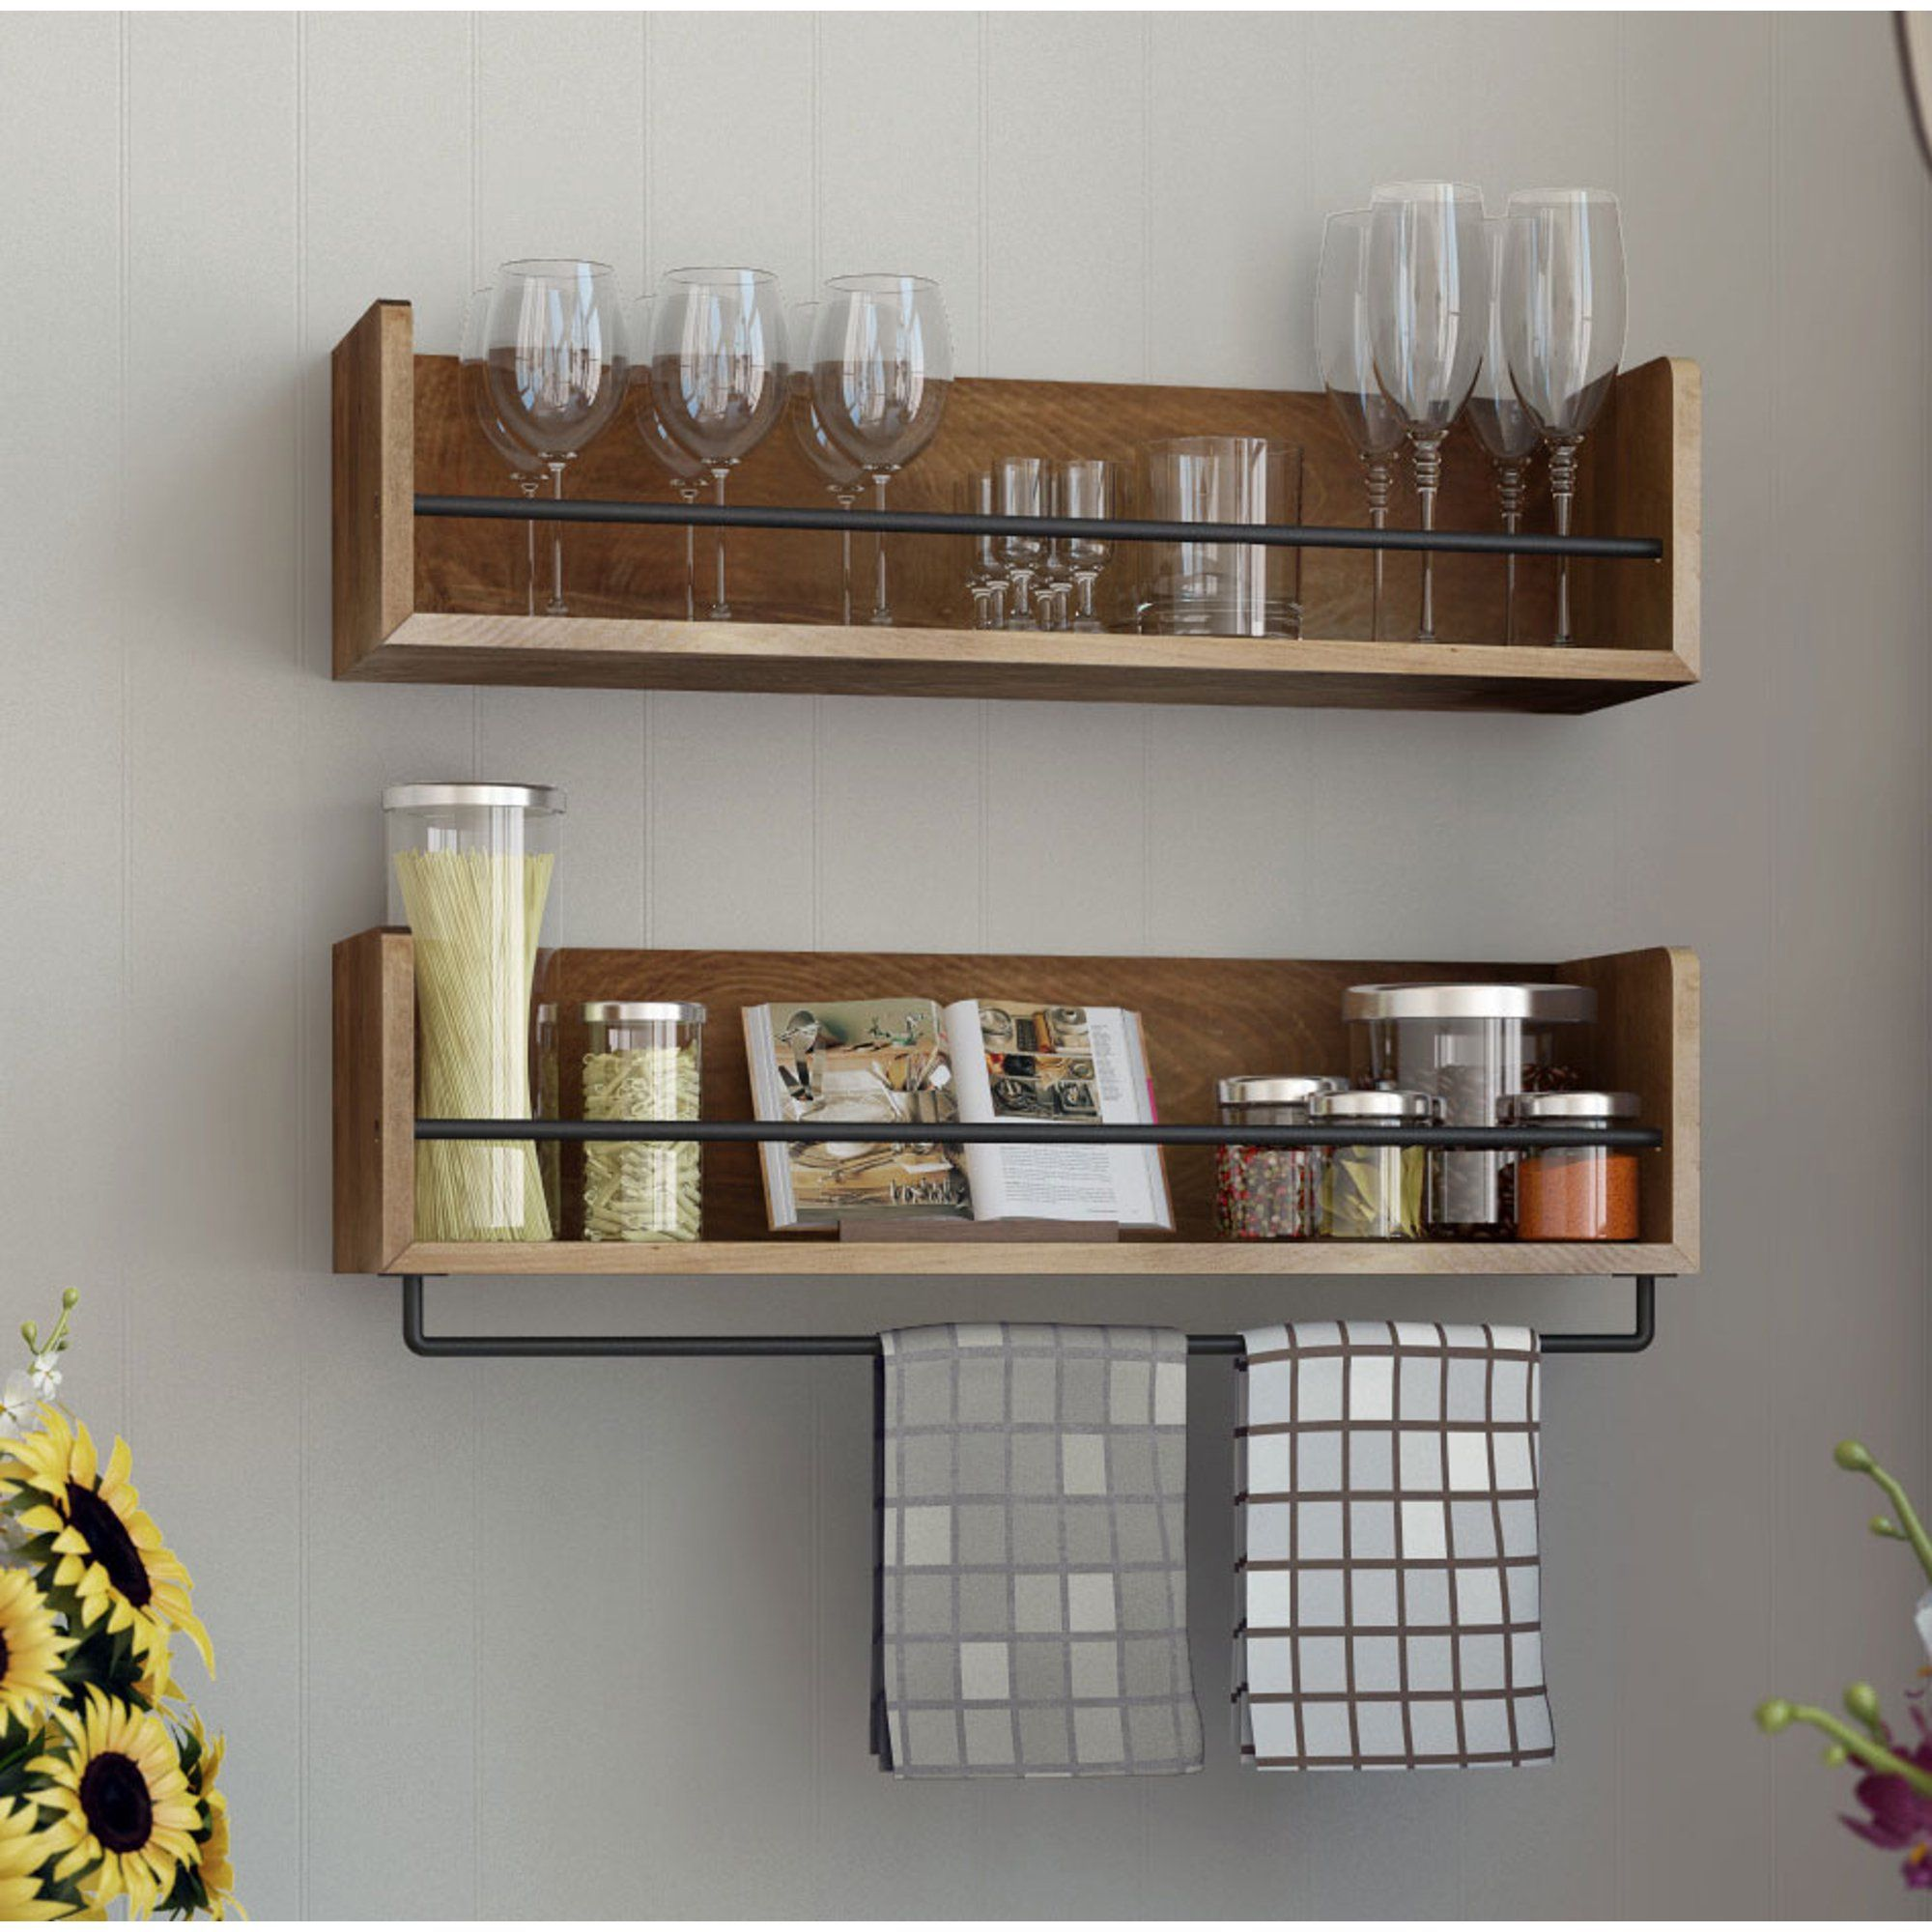 Rustic State Floating Wood Wall Shelf With Metal Rail Great As Spice Rack Artifact Design Walnut Stained Set Of 2 Walmart Com In 2020 Wood Wall Shelf Shelves Kitchen Shelves